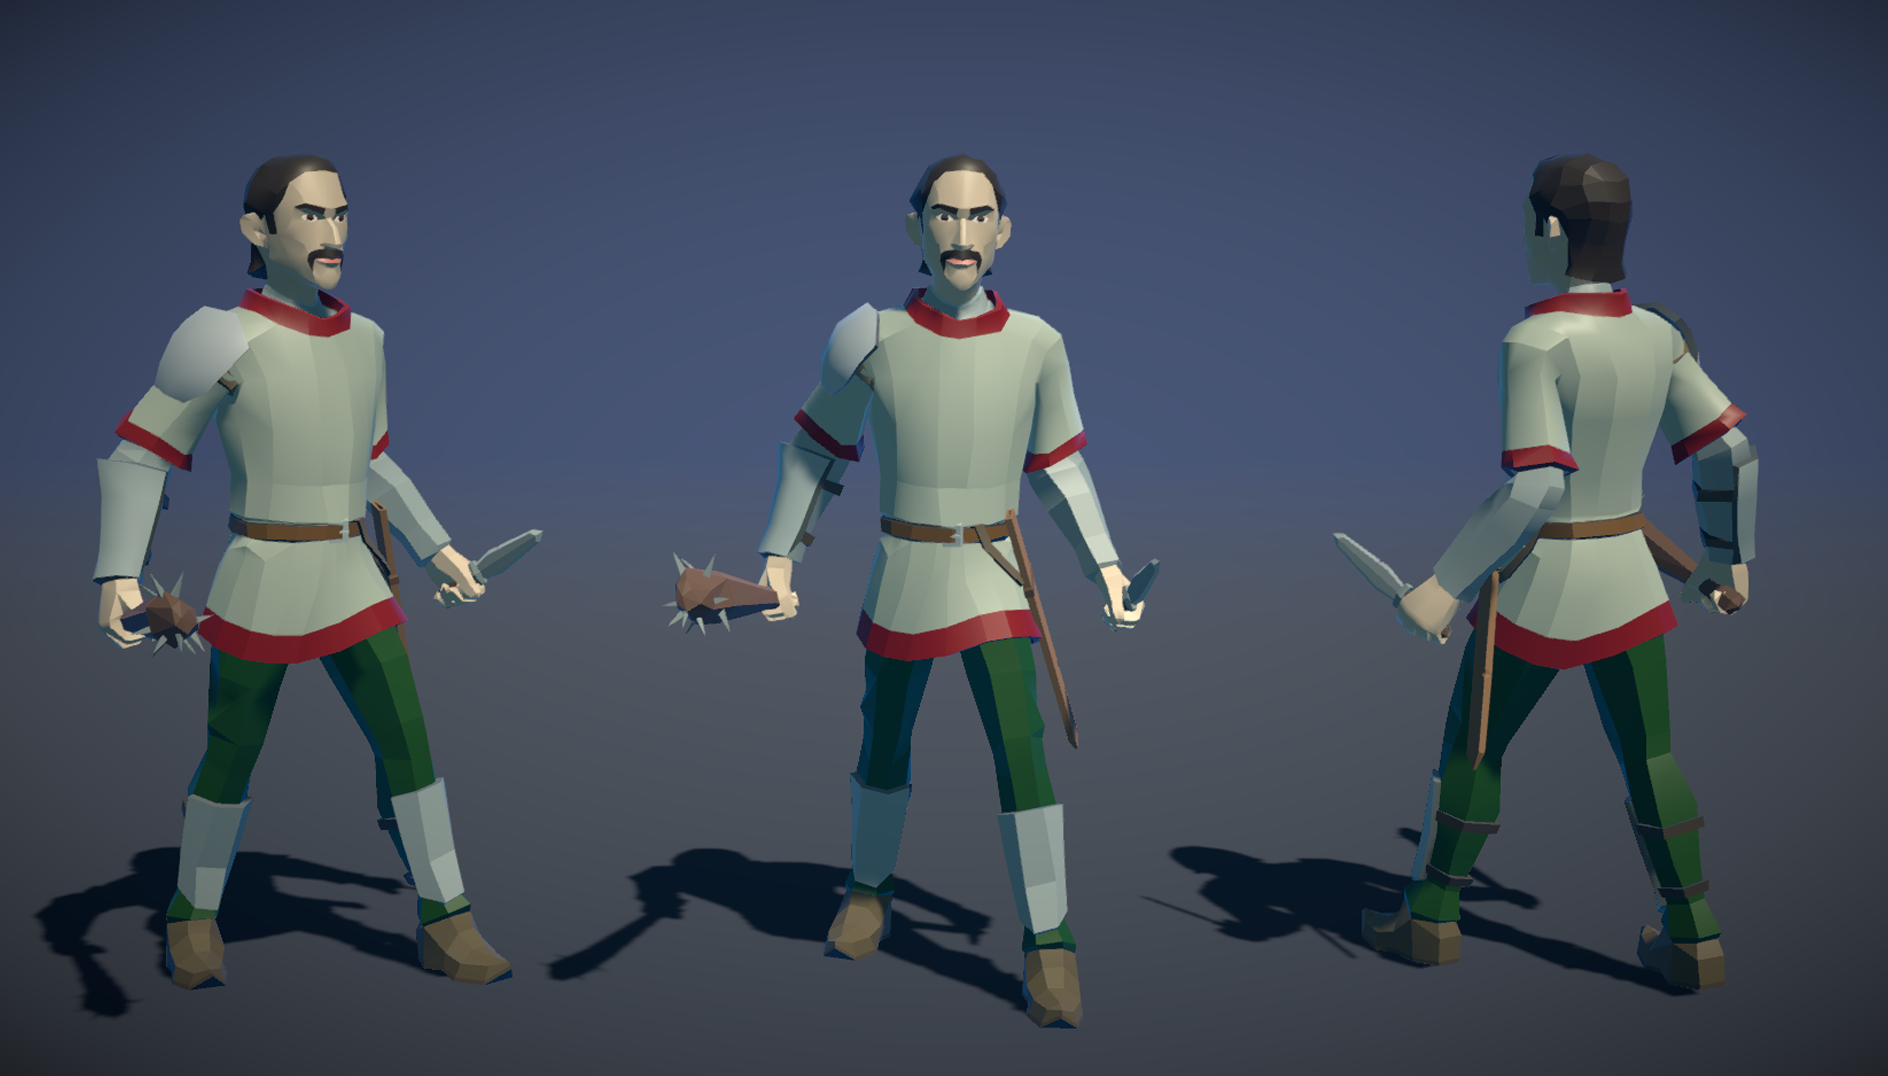 PT_Medieval_Lowpoly_Characters_Militia_01.png